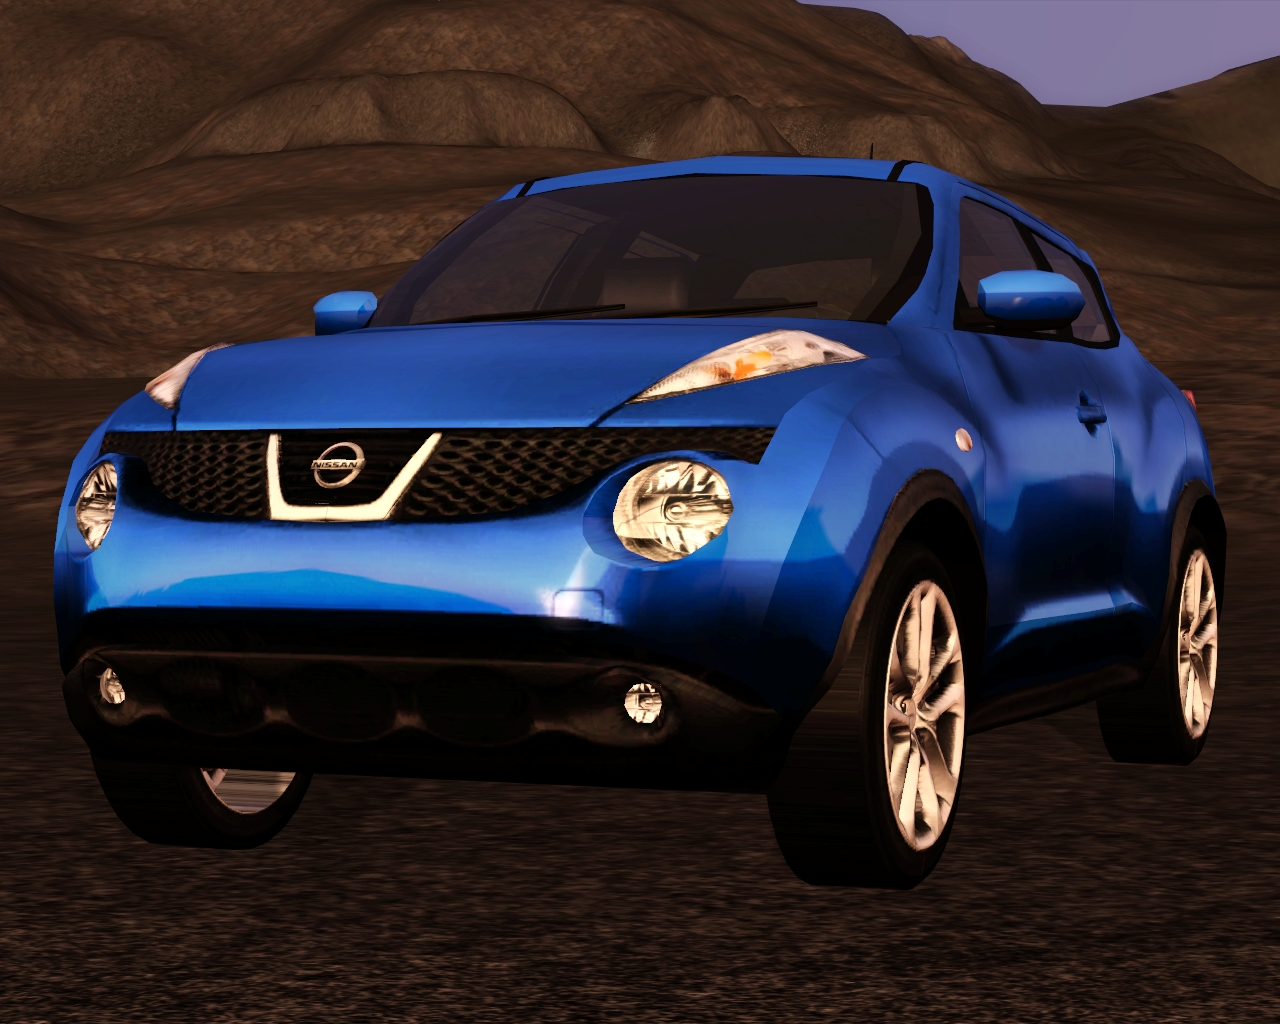 2011 Nissan Juke by Fresh-Prince